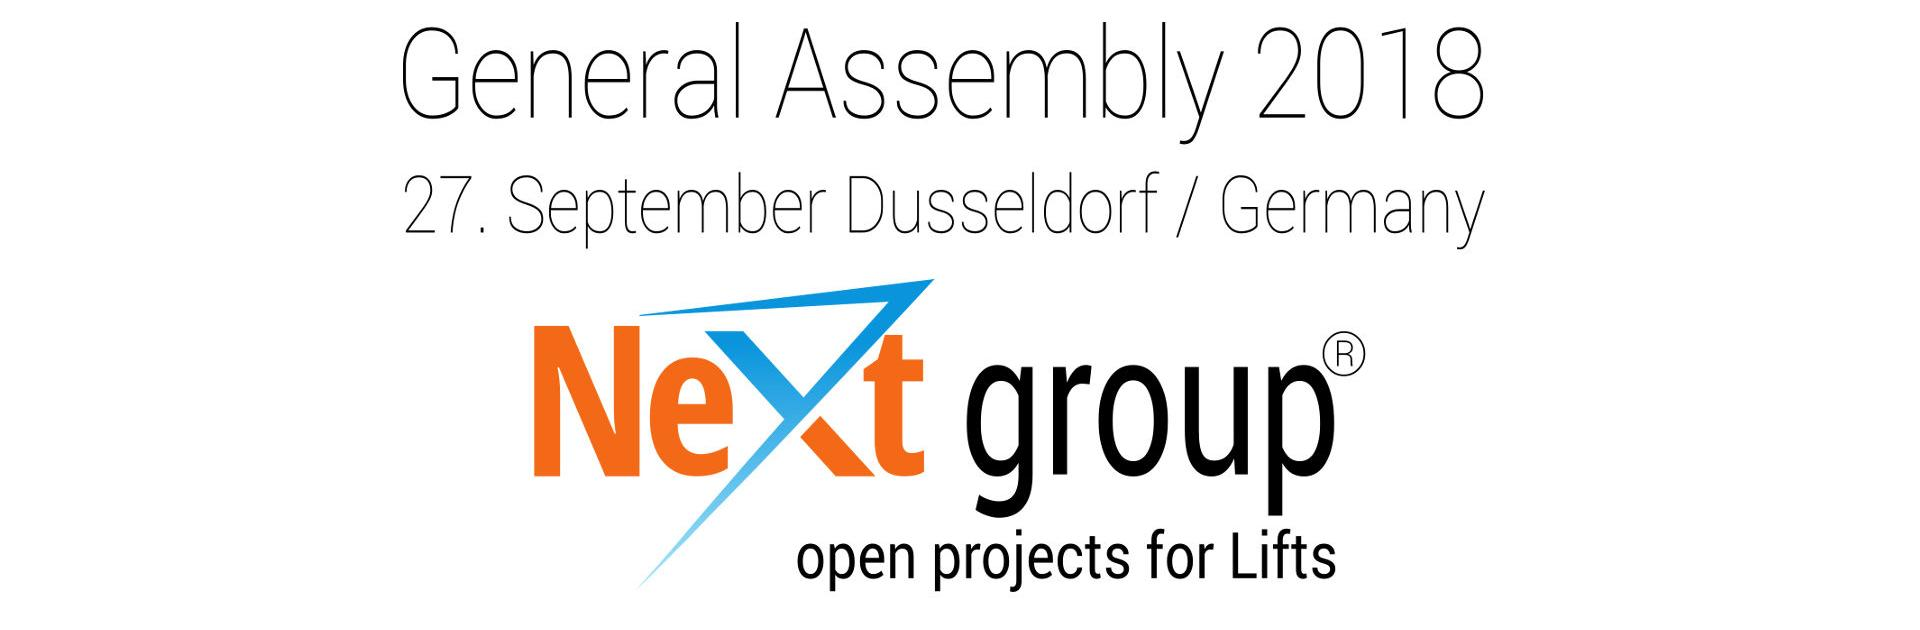 NeXt group General Assembly 2018